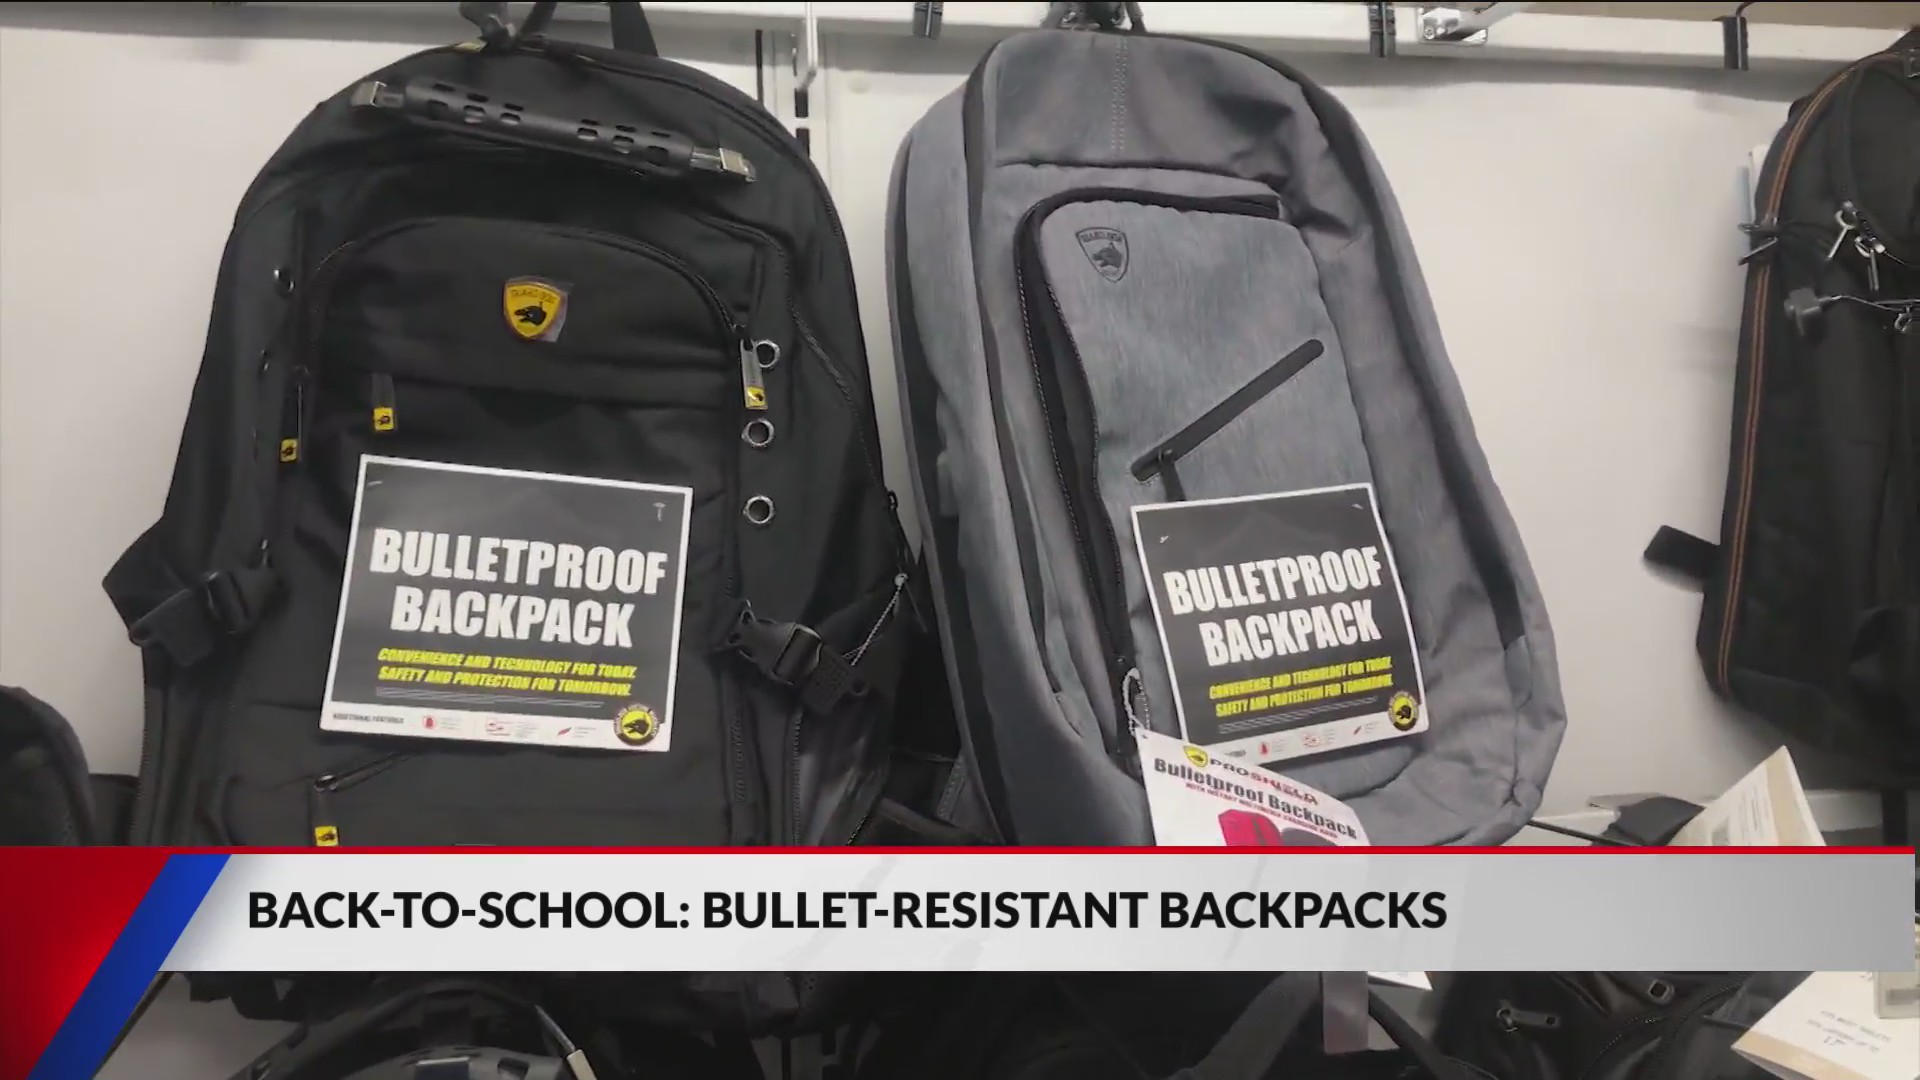 Sales of bulletproof backpacks surged 200% to 300% in the